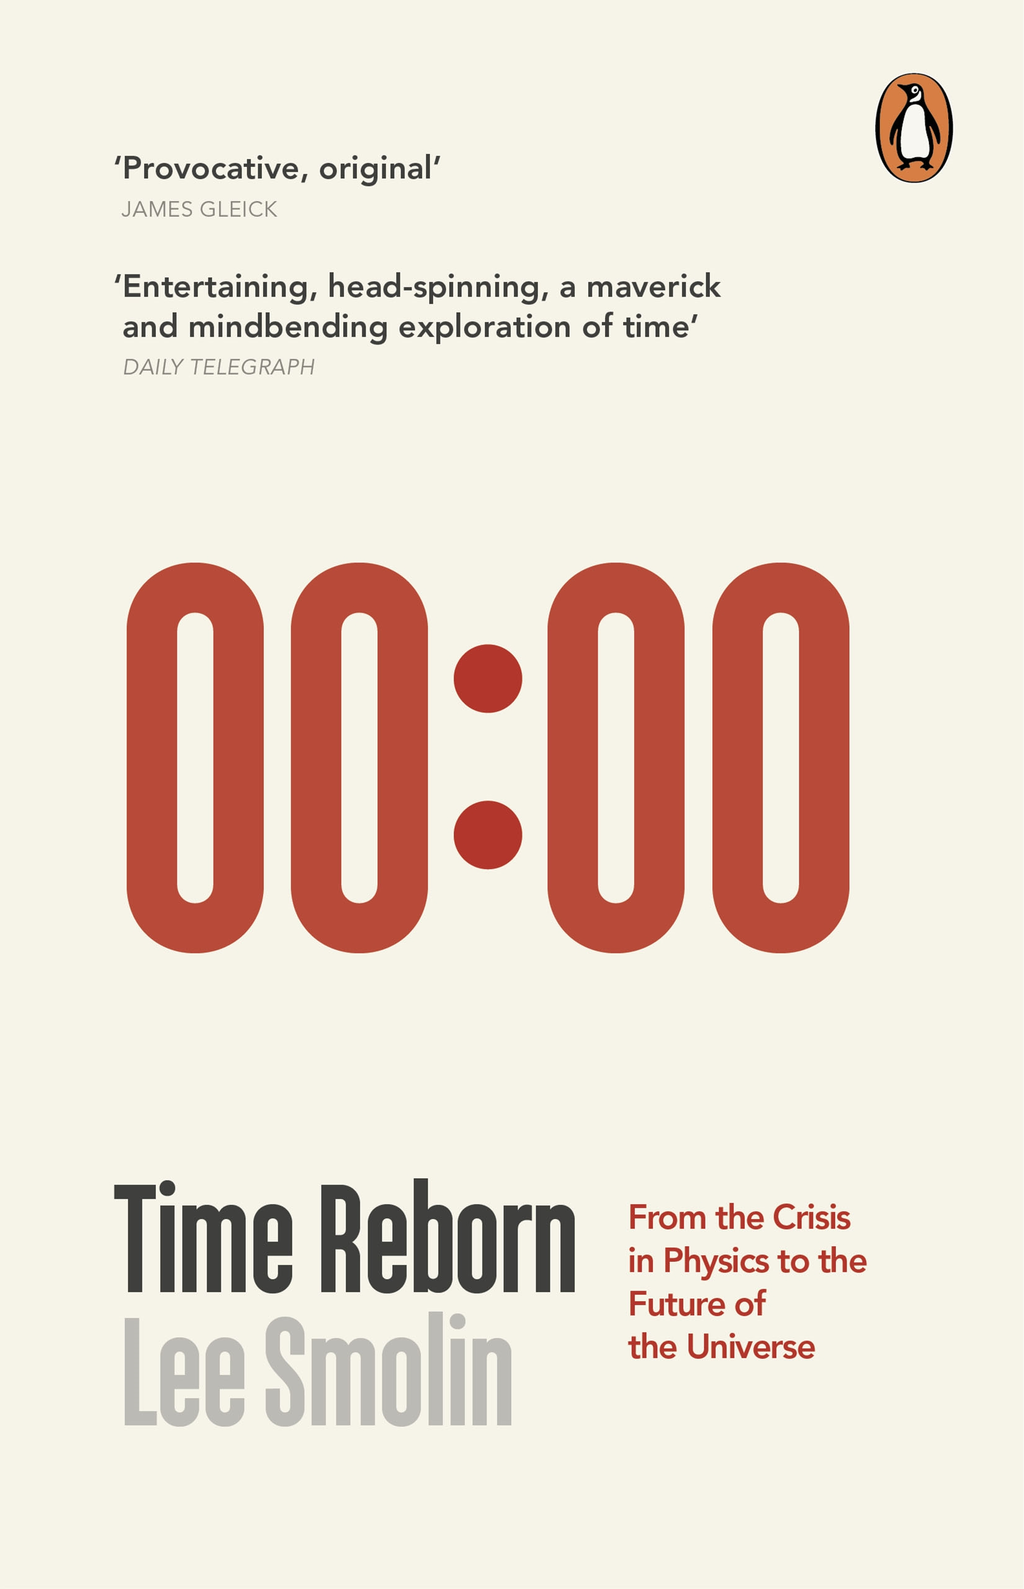 Time Reborn From the Crisis in Physics to the Future of the Universe